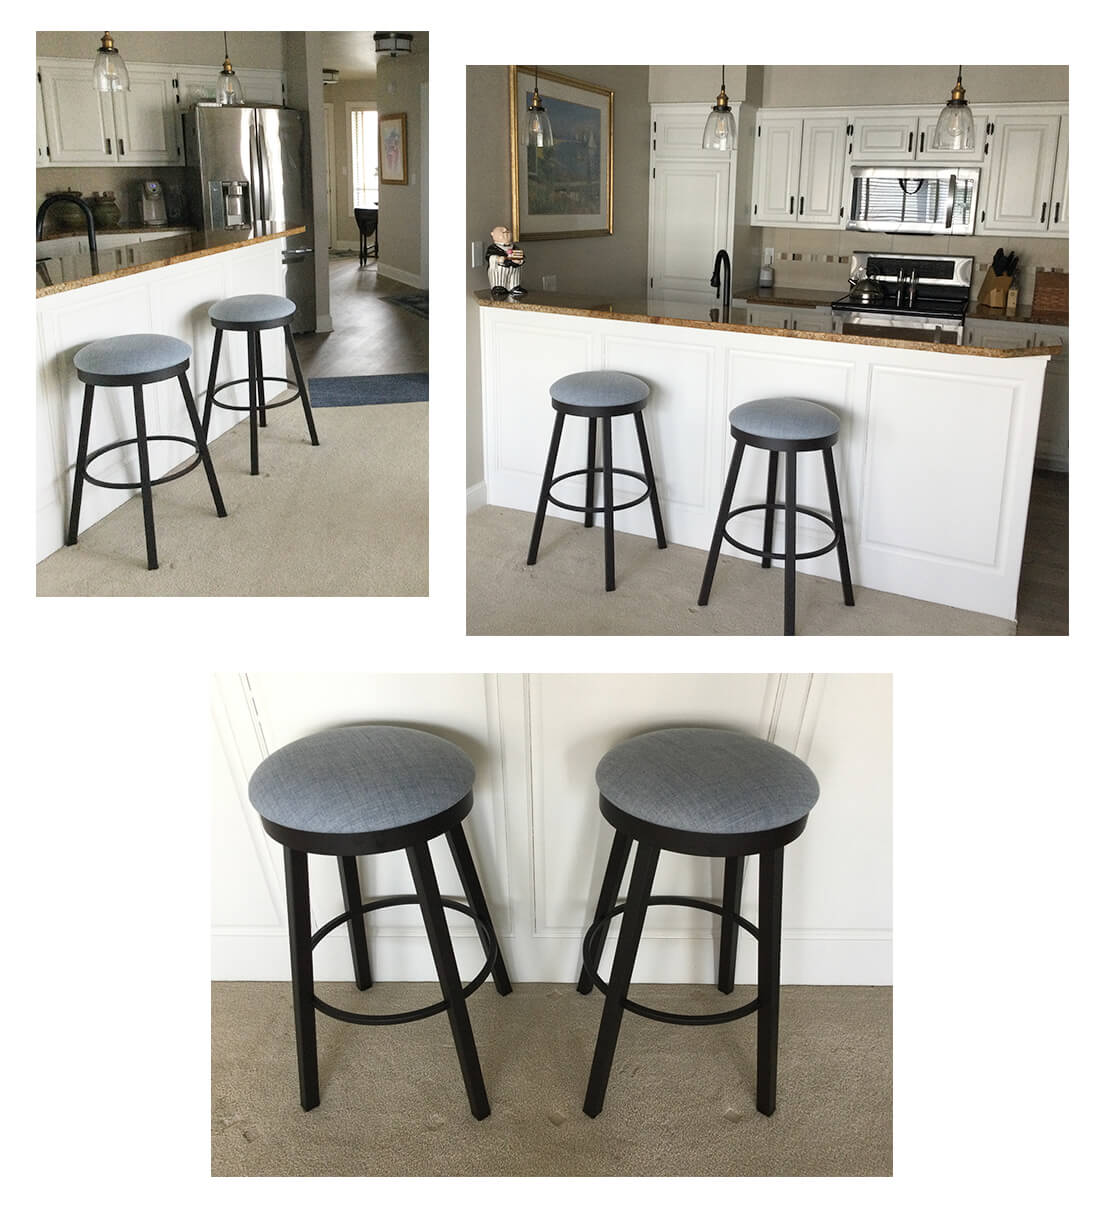 Amisco's Connor Backless Swivel Bar Stool in Dark Brown Metal and Blue Seat Cushion in Transitional Kitchen